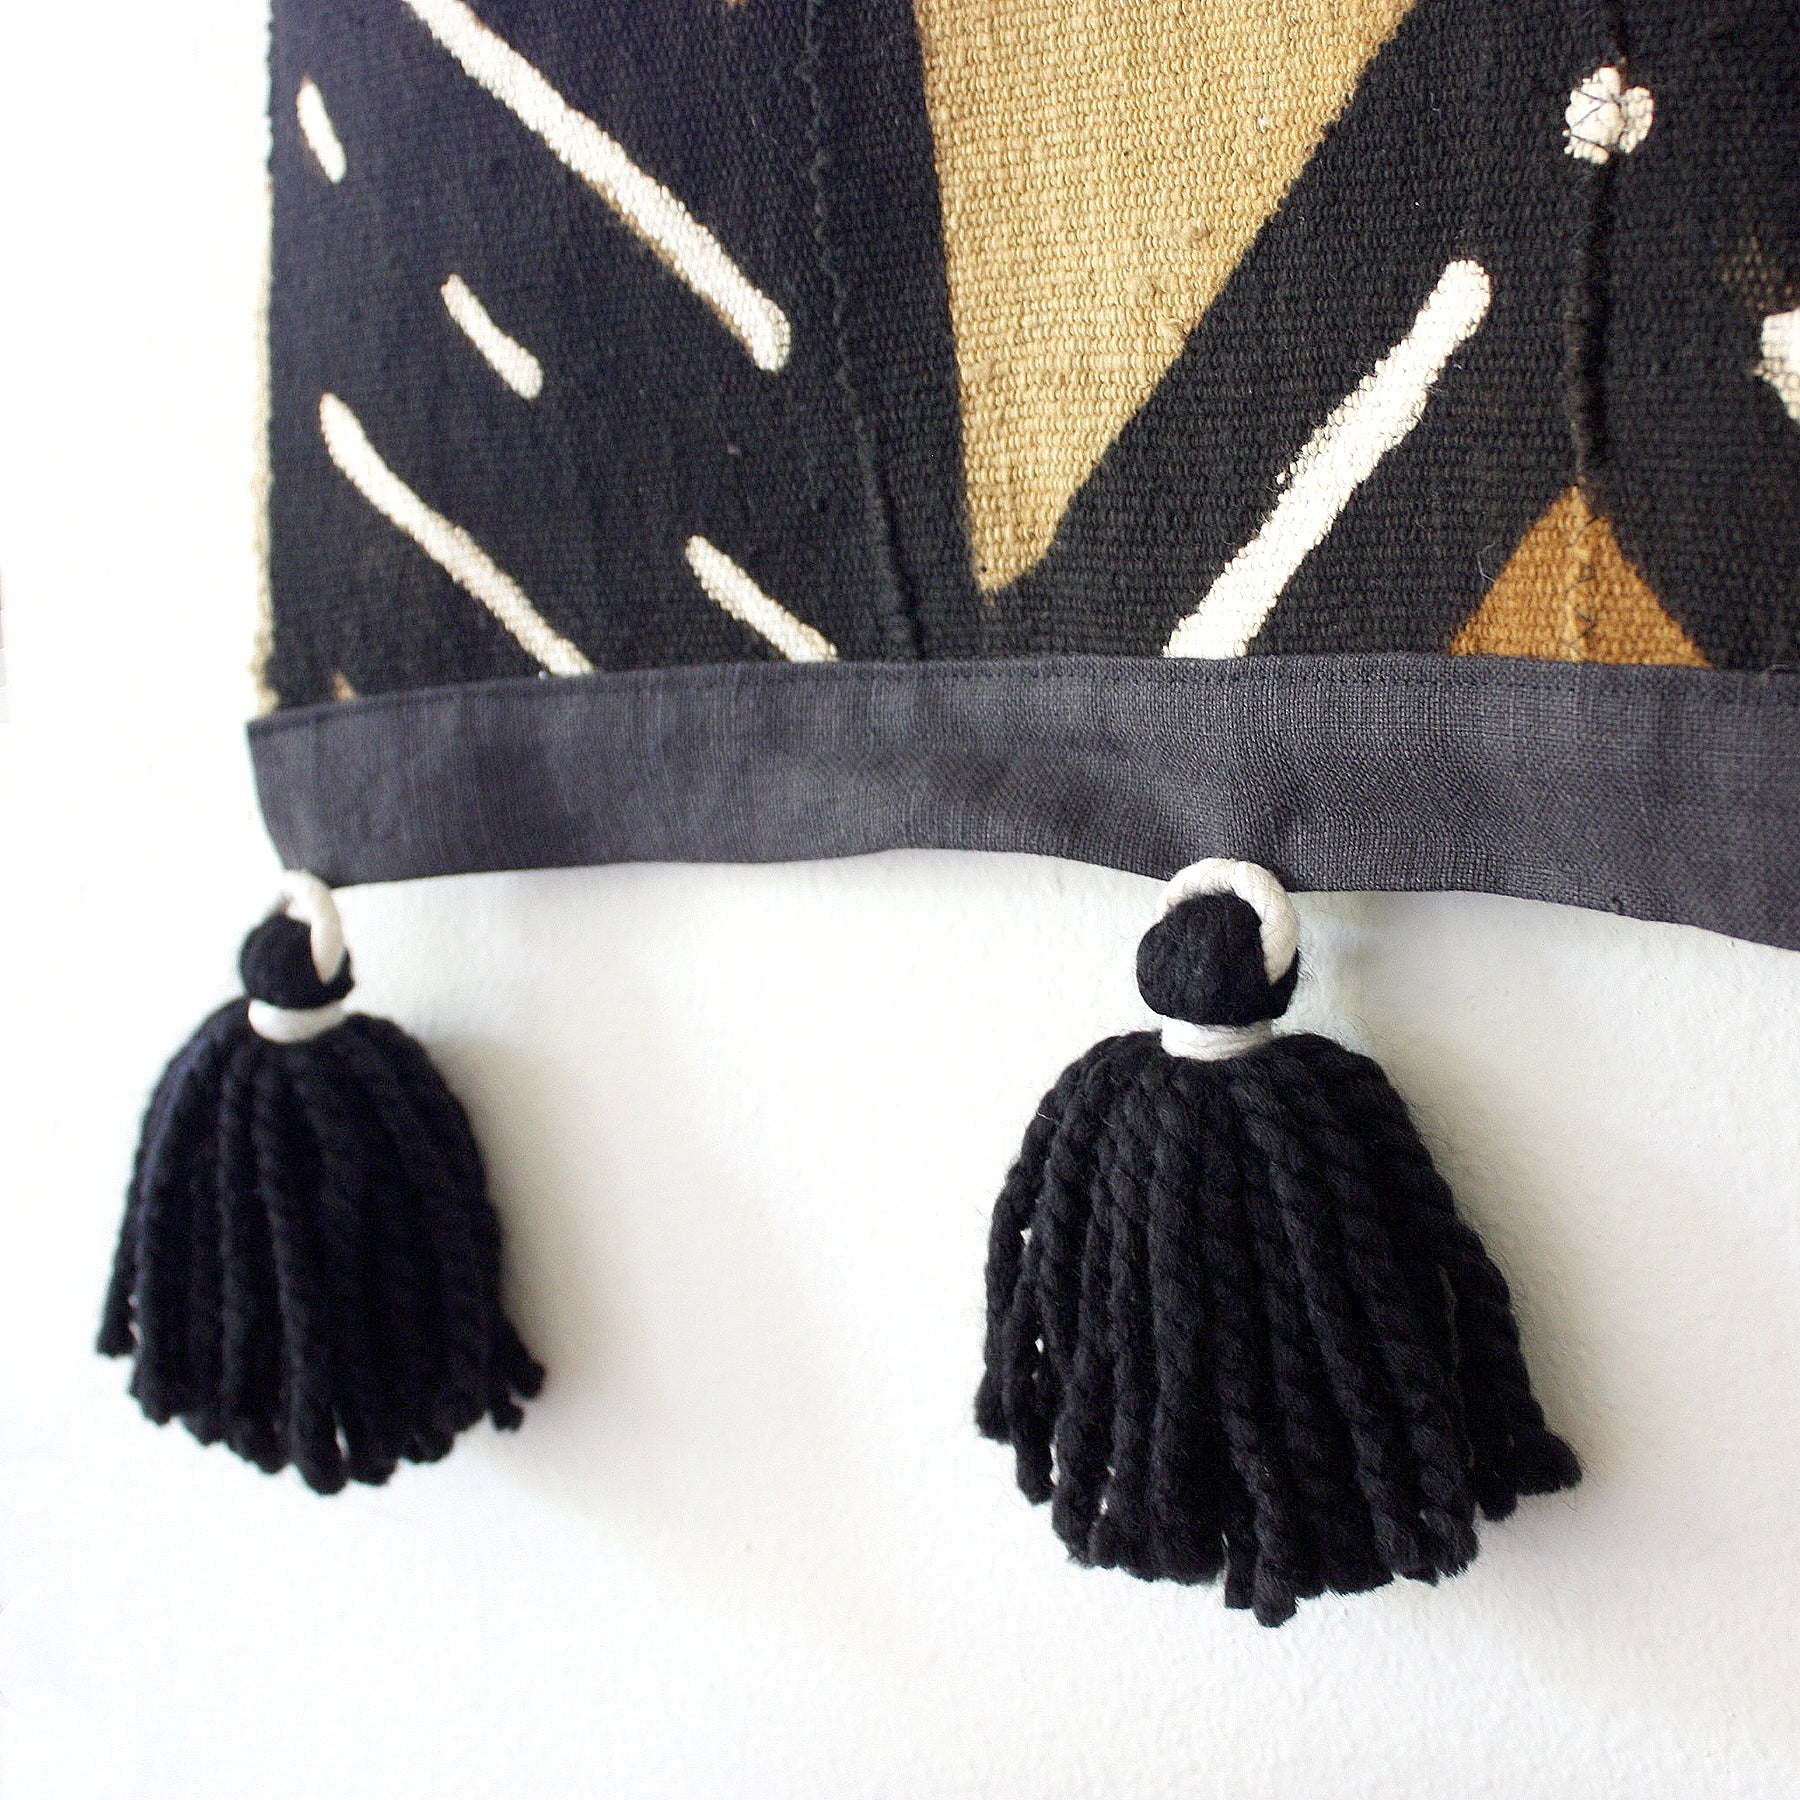 Black Large Mudcloth Wallhanging Tapestry with Tassels - Random Bars